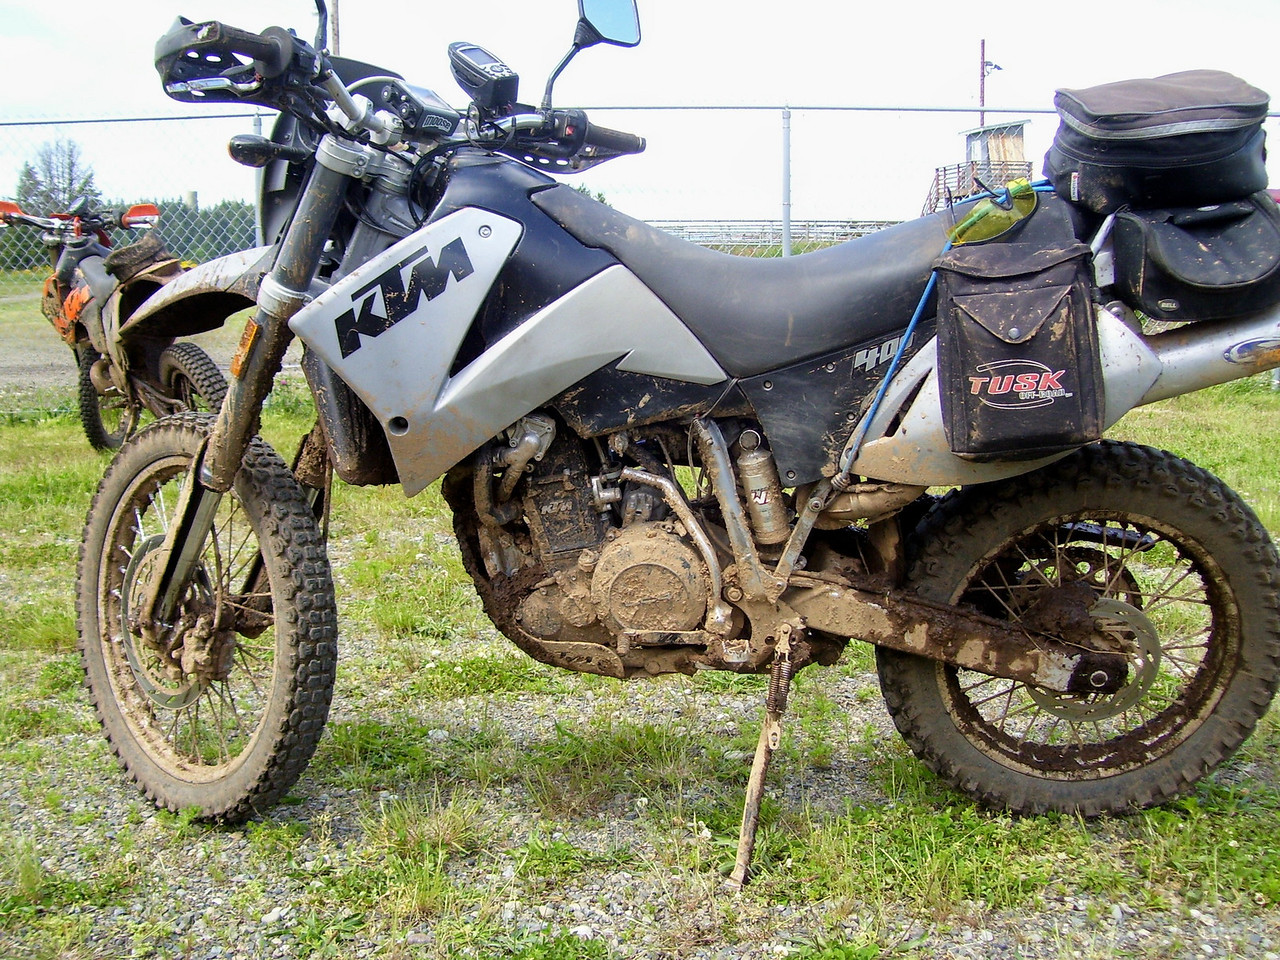 The Dual Sport KTM 400 LC4 was pressed into duty for Fred's reluctent KTM 450 EXC..